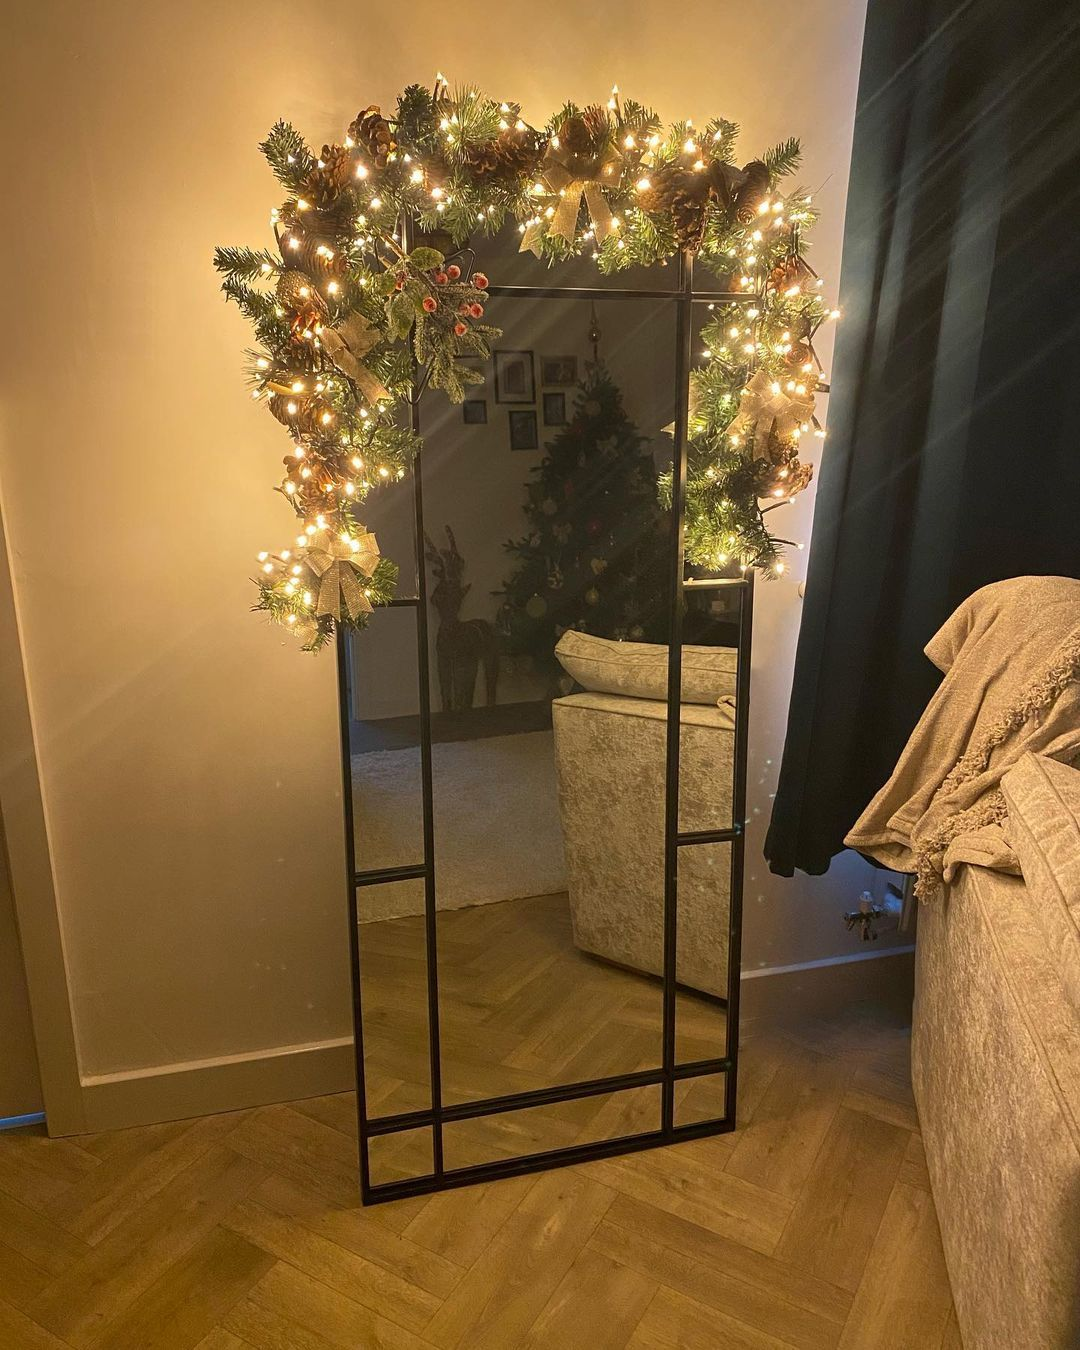 The mirror wasn't festive enough, so I made my own Garland. Livingroom is now complete 🖤 _ _ #christmasdecor #christmas #festive #christmastree #christmasgarland #mirrorgarland #christmasdecorations #christmasinspo #christmasinnovember #home #homedecor #homeinterior #newhome #newhomeowners #newbuild #newbuildpersimmon #persimmonnewbuild #persimmon #persimmonsutton #sutton #homesweethome